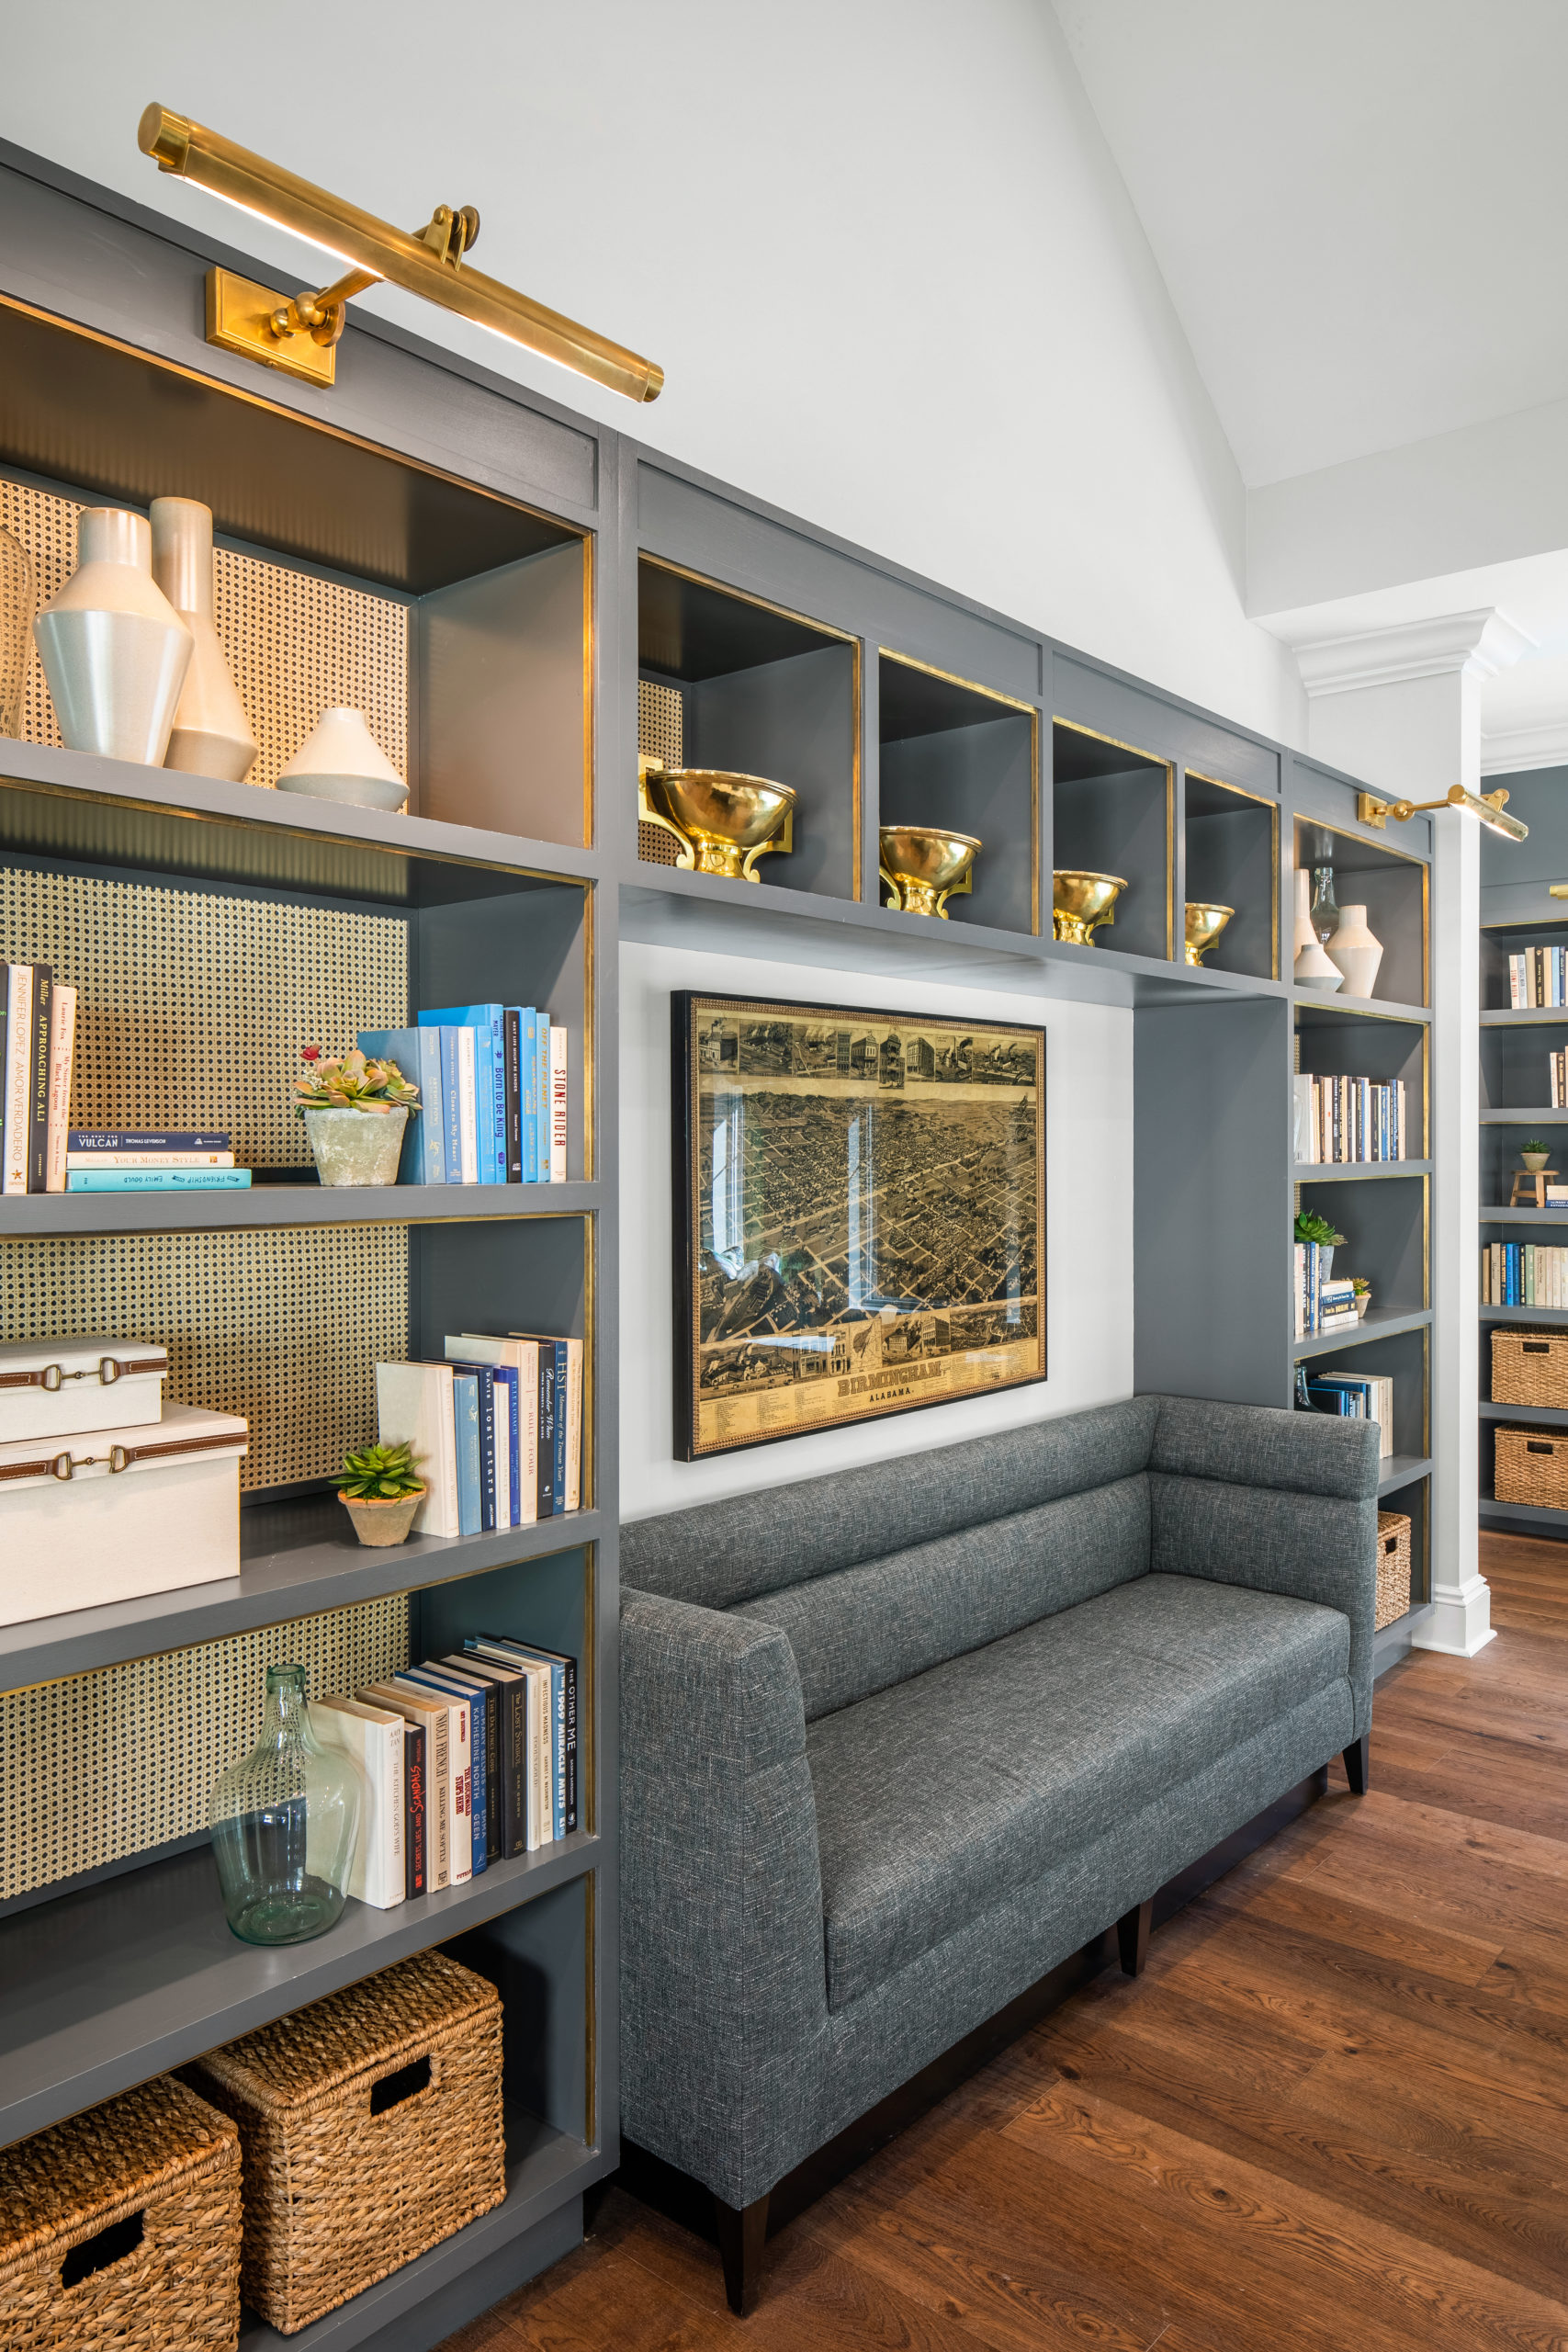 Longleaf library with gray shelves filled with books, gold and white decor, wicker baskets and gray sofa